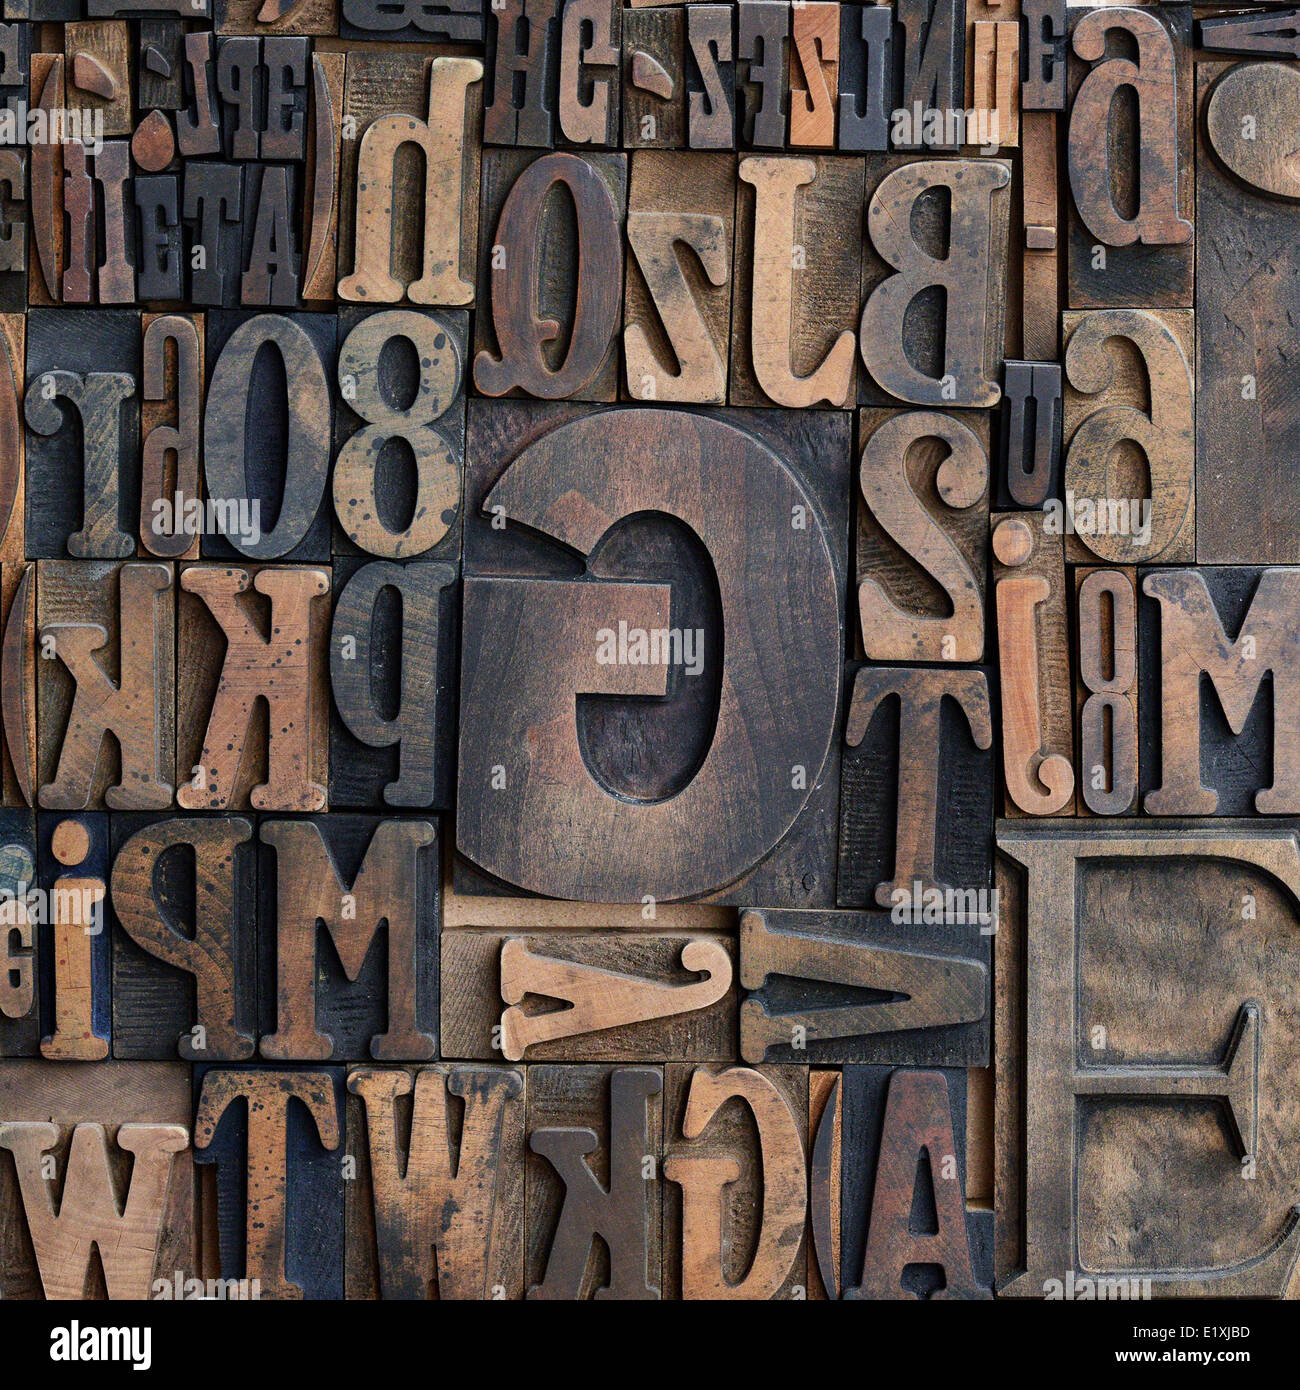 Wooden printers typeface letters - Stock Image